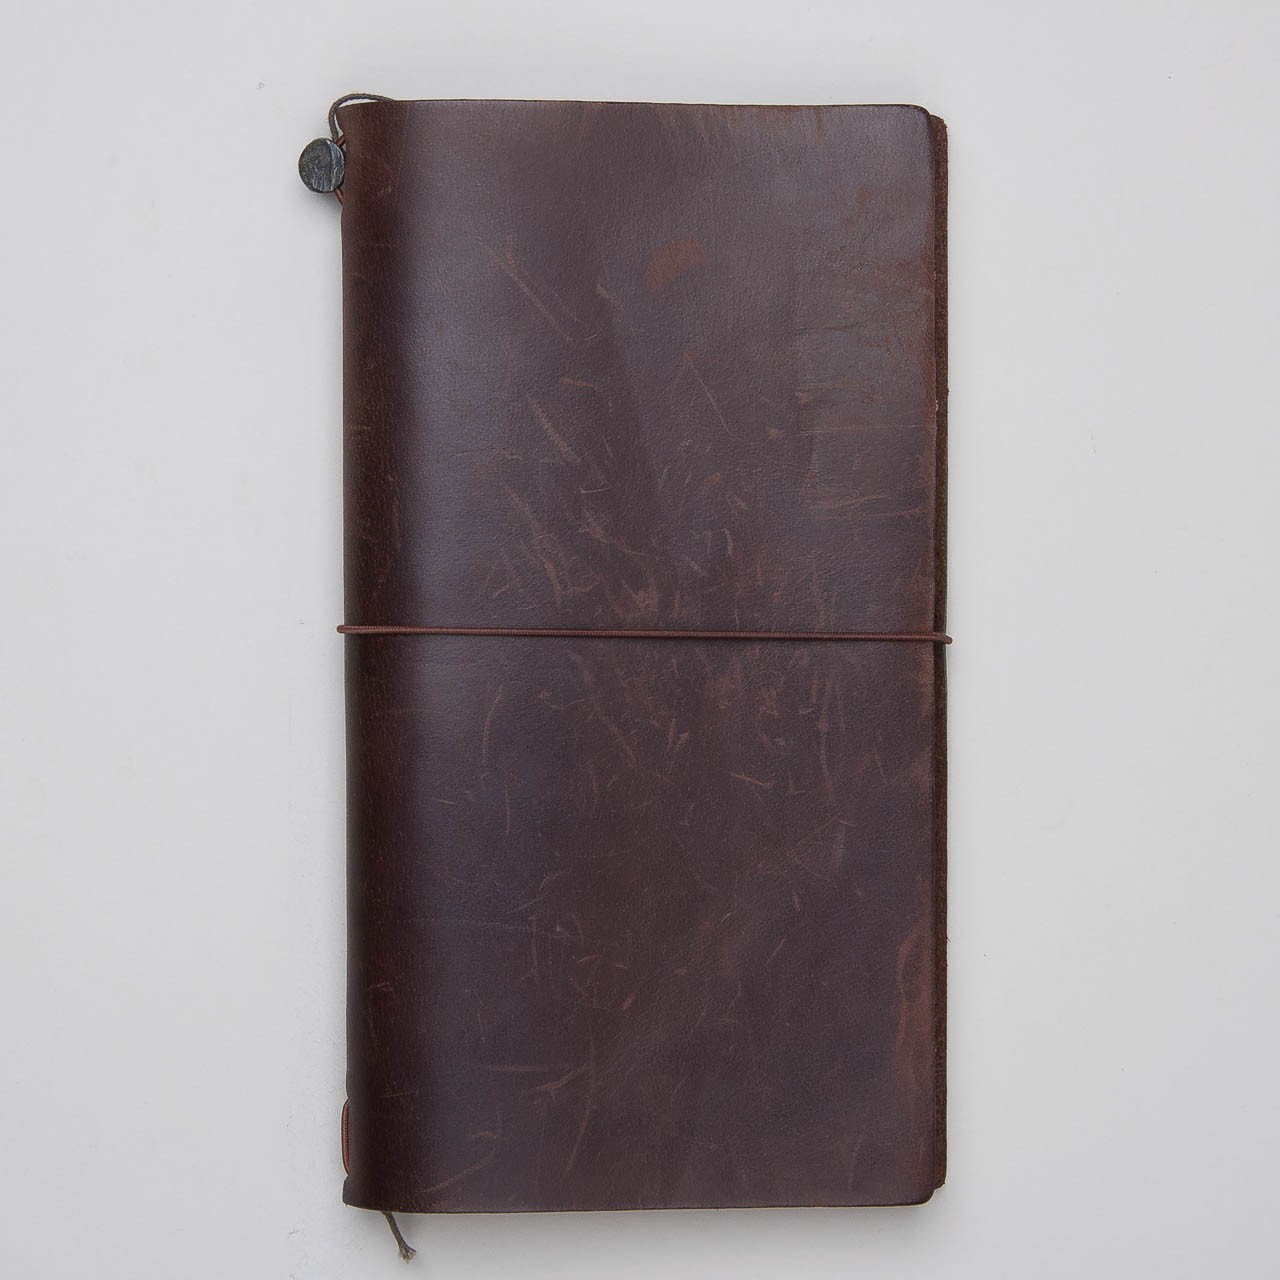 Travelers Notebook aus braunem Leder